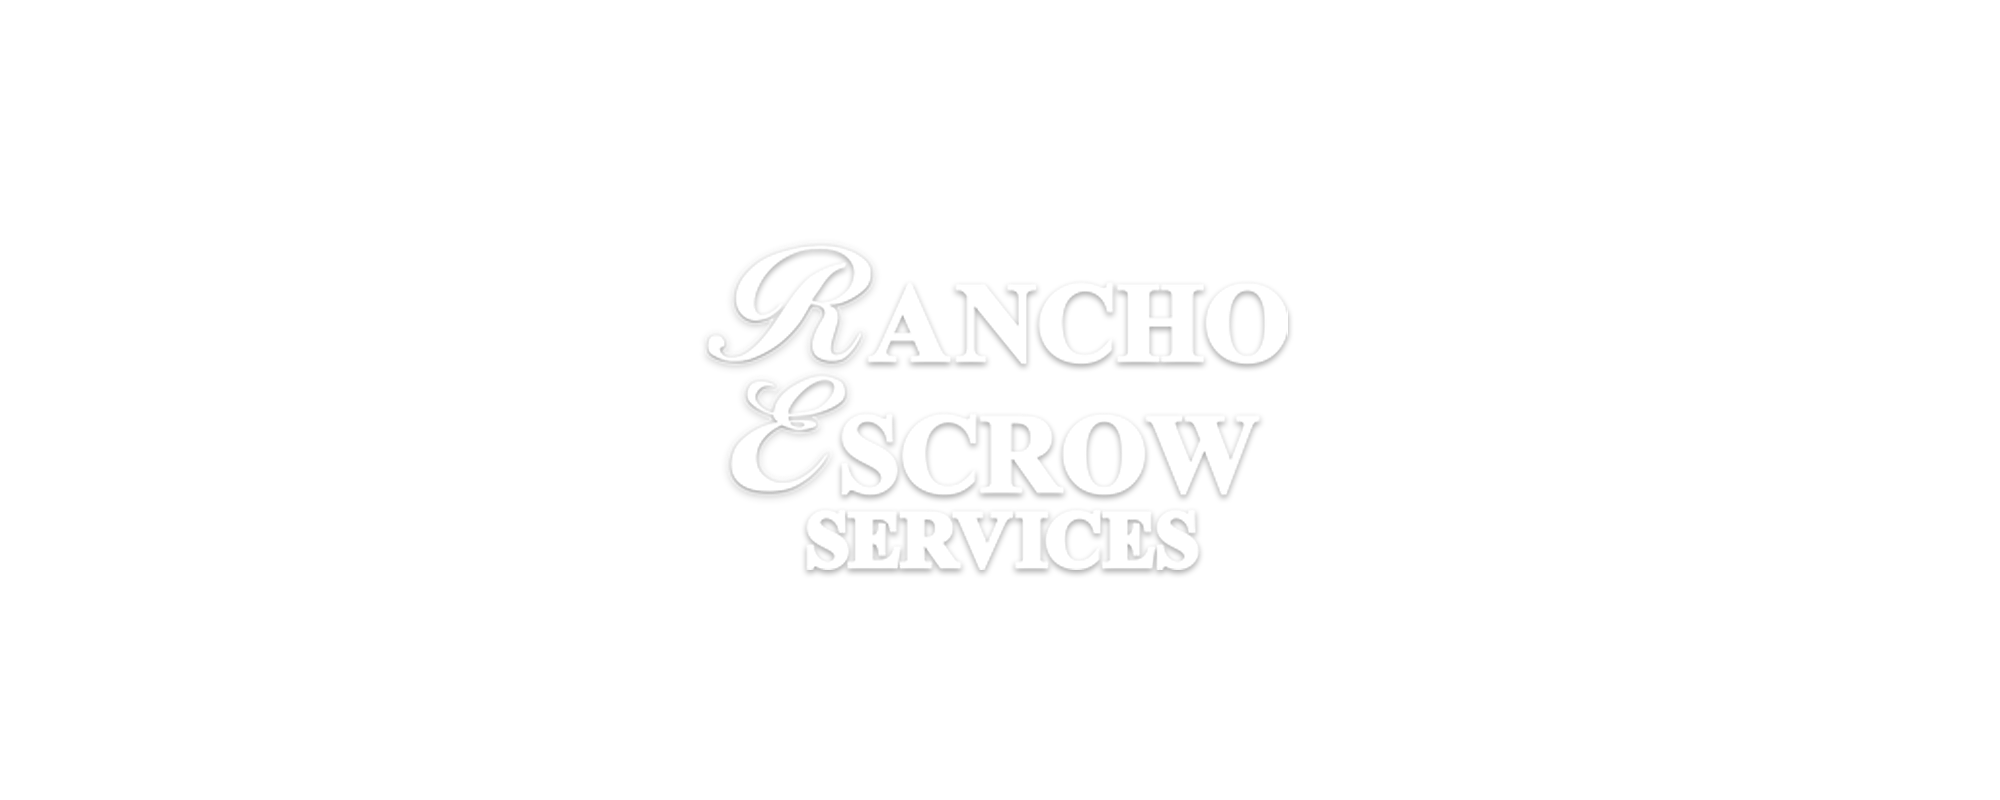 Rancho Escrow Services